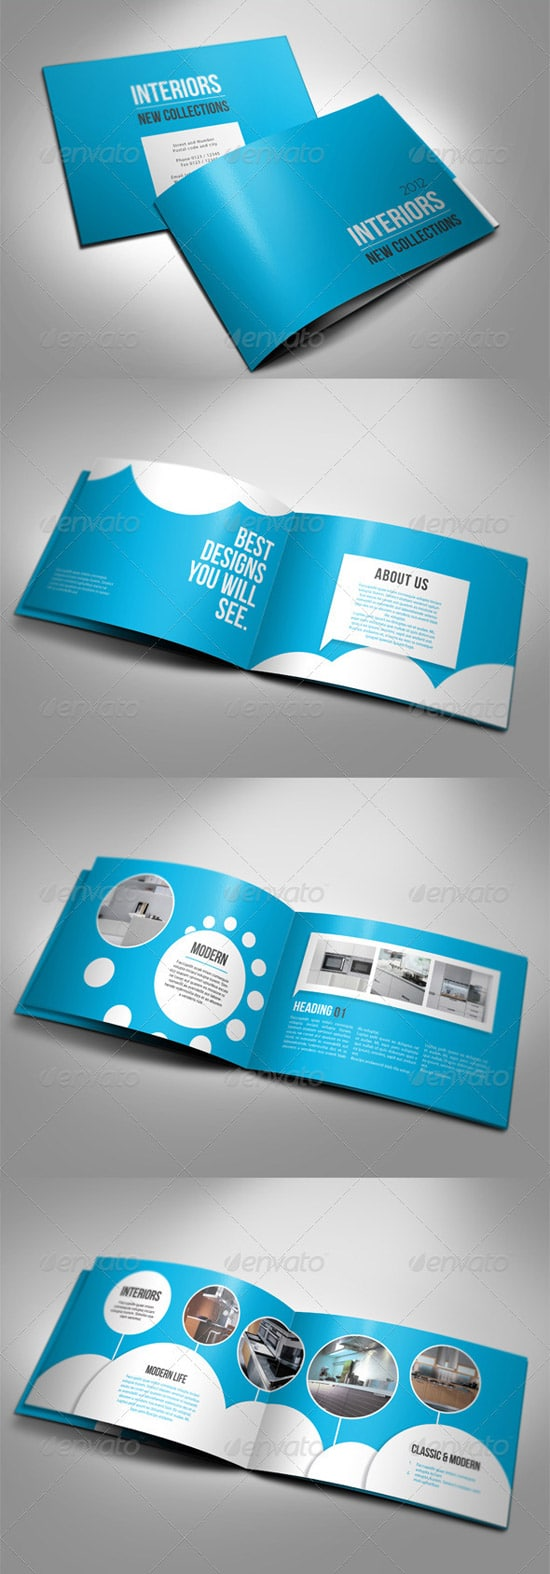 a5 brochure template - brochure templates 40 very affordable high quality